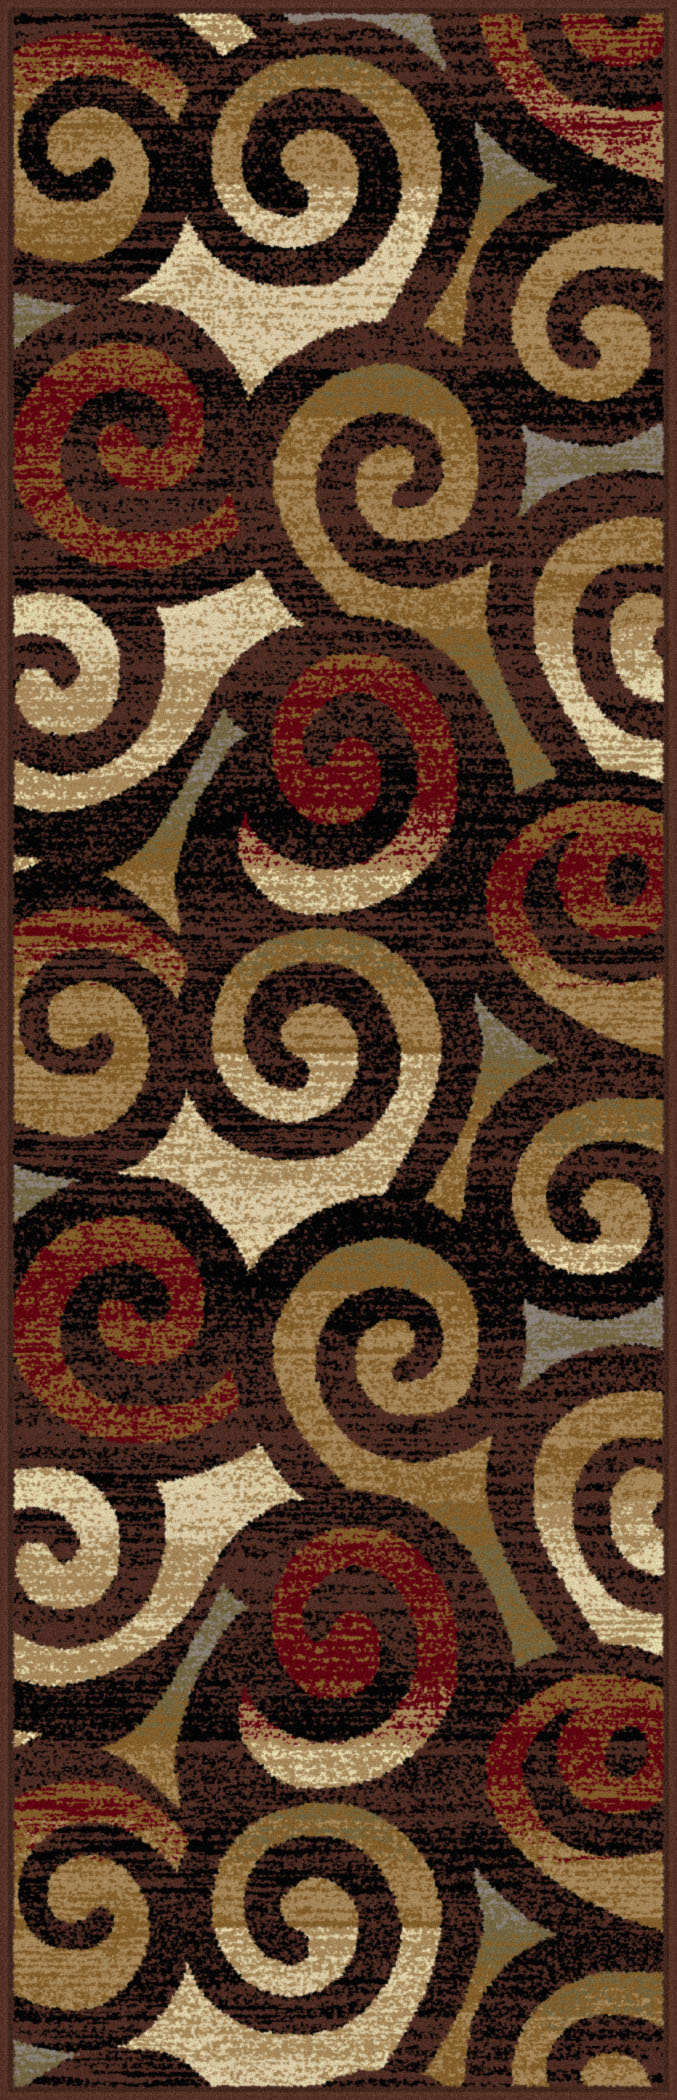 Festival 8960 Multi Contemporary Area Rug